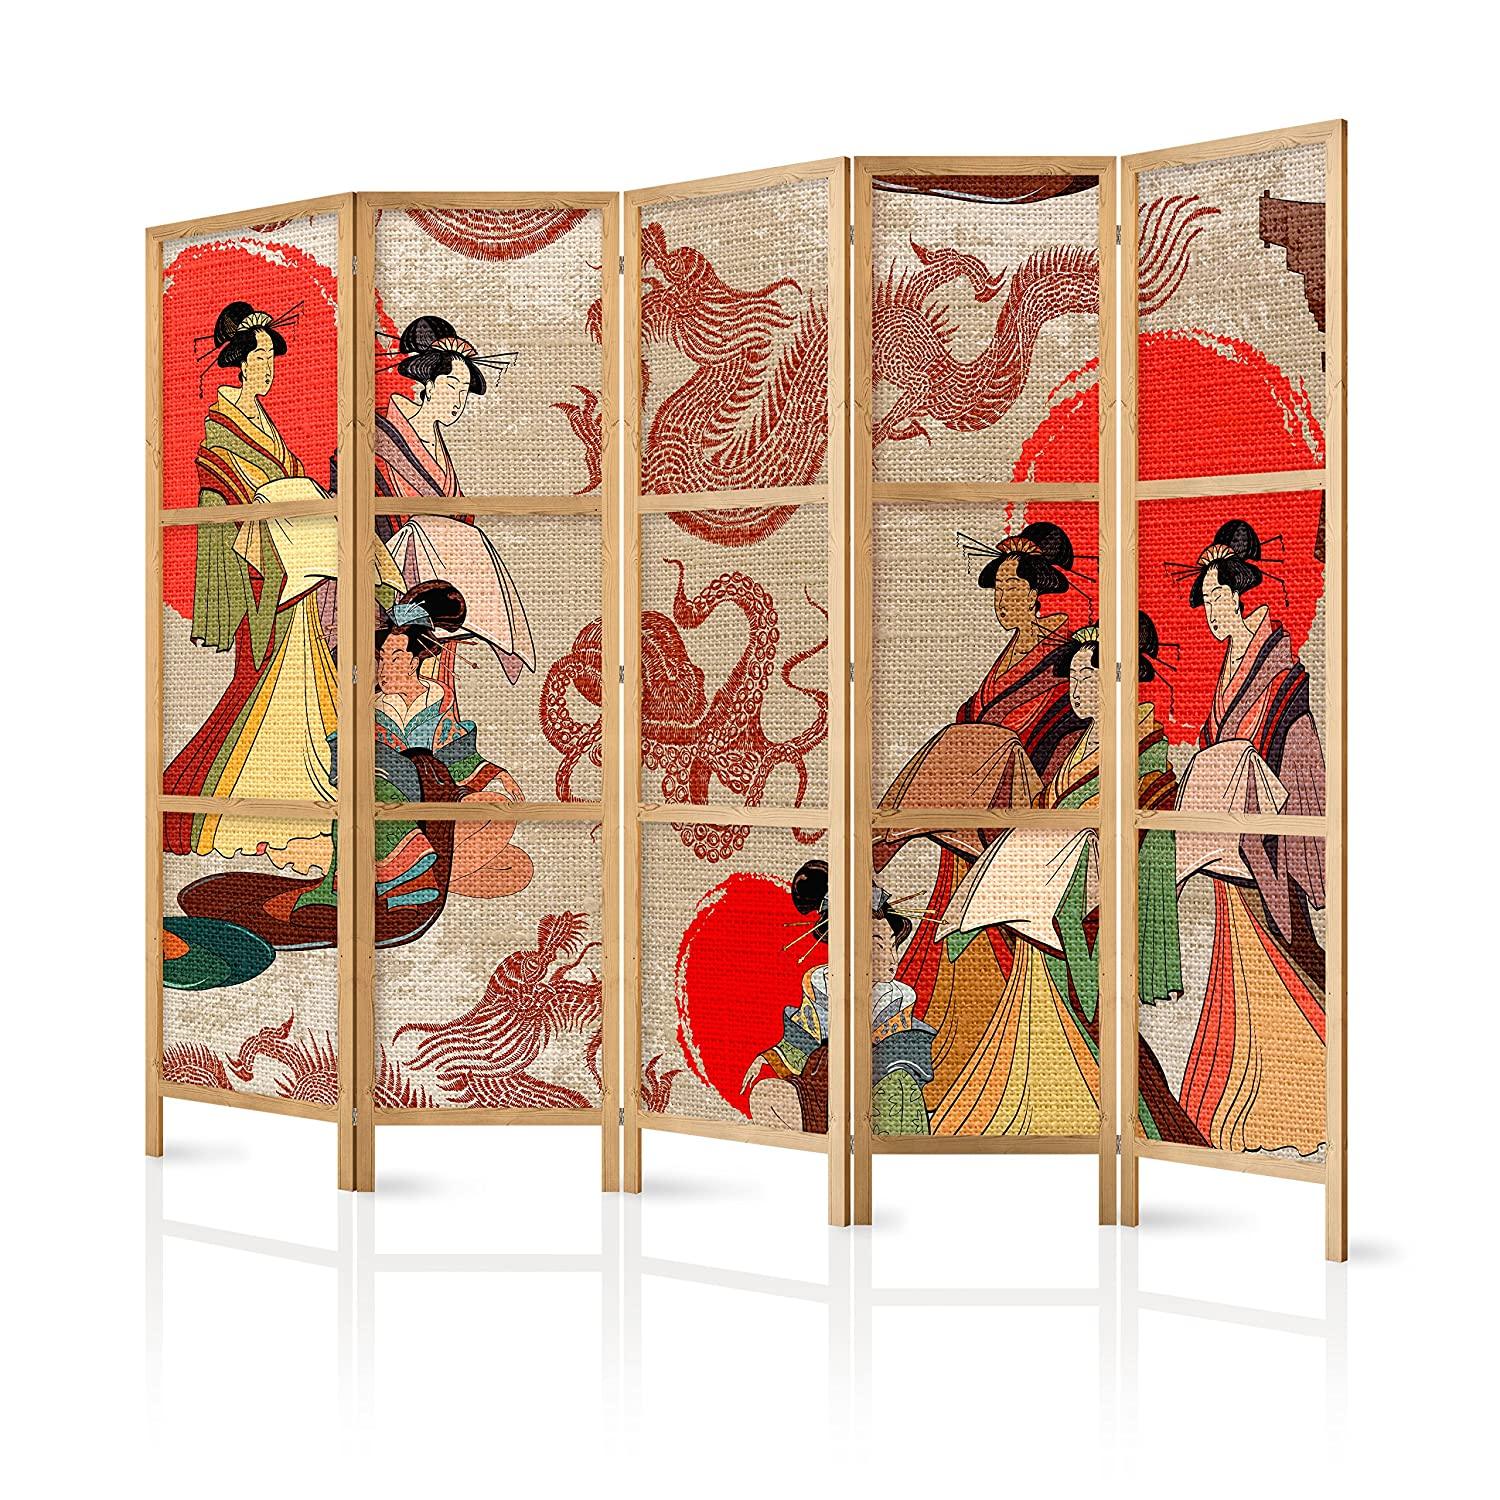 11 5 pieces murando Room Divider XXL 225x171cm 5 Pieces Non Woven Fabric German Quality Room Divider Wood Design Pattern Hand Made Japan p-A-0009-z-c